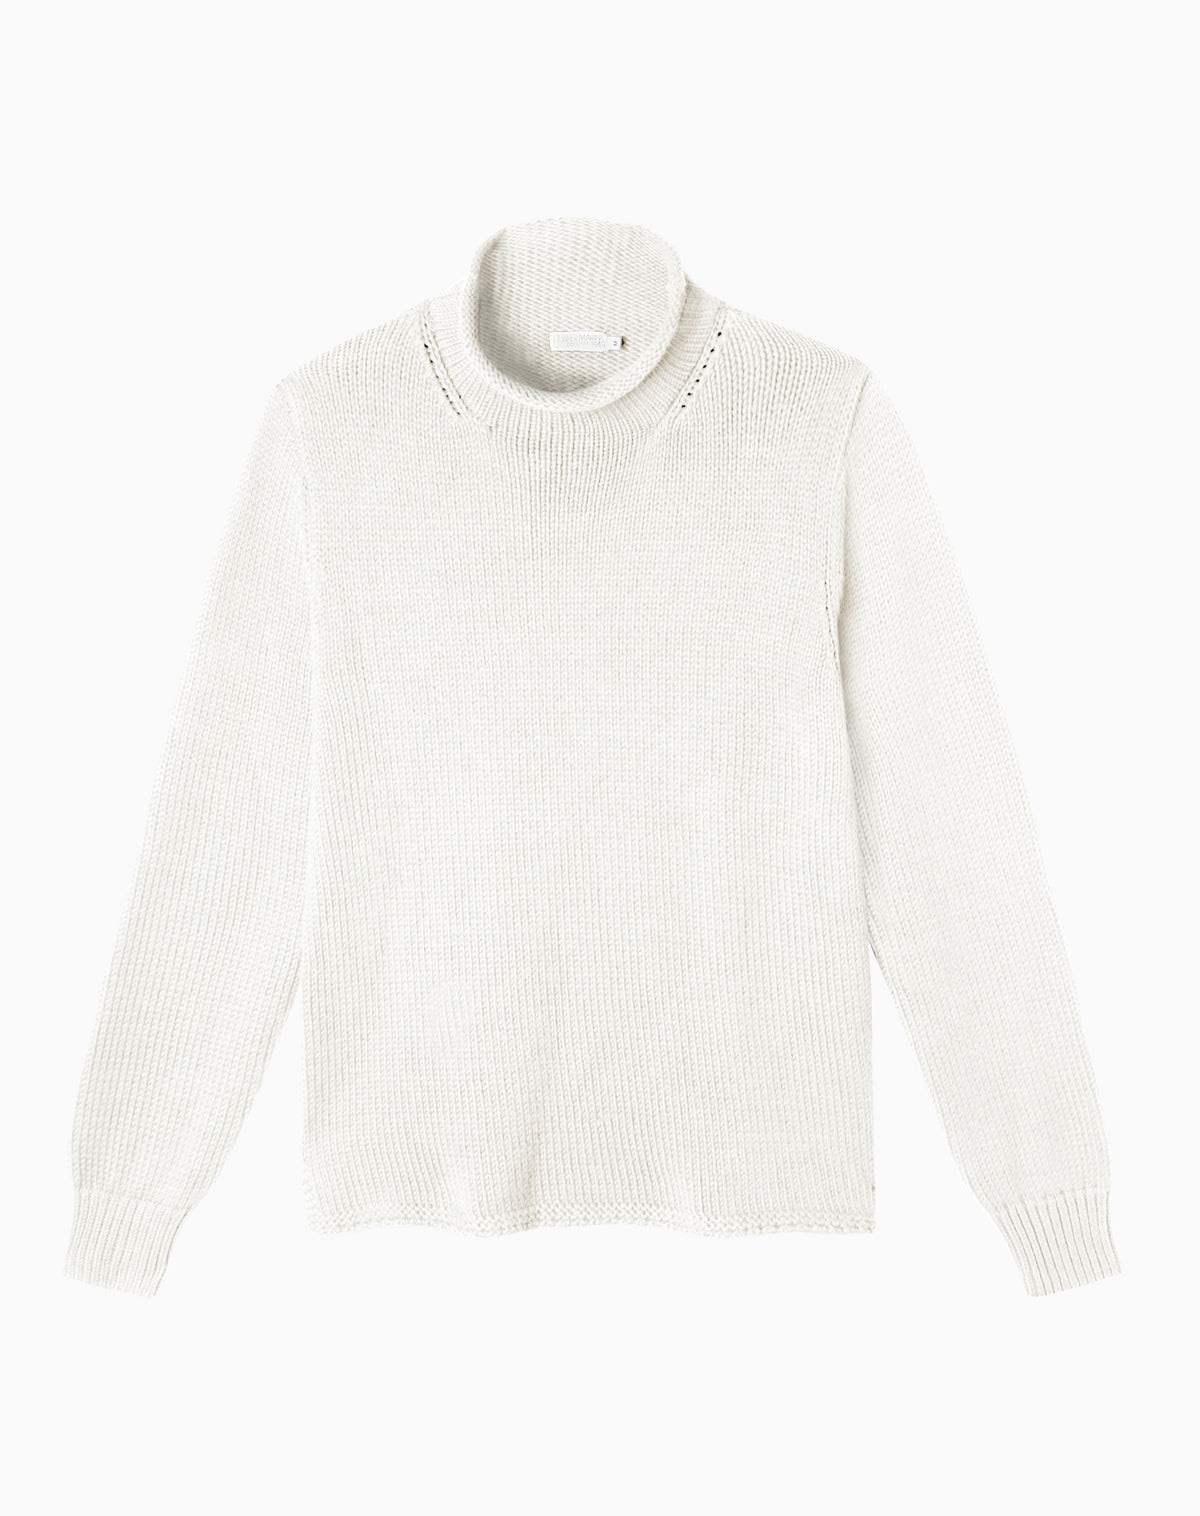 Fisherman's Sweater in Egret